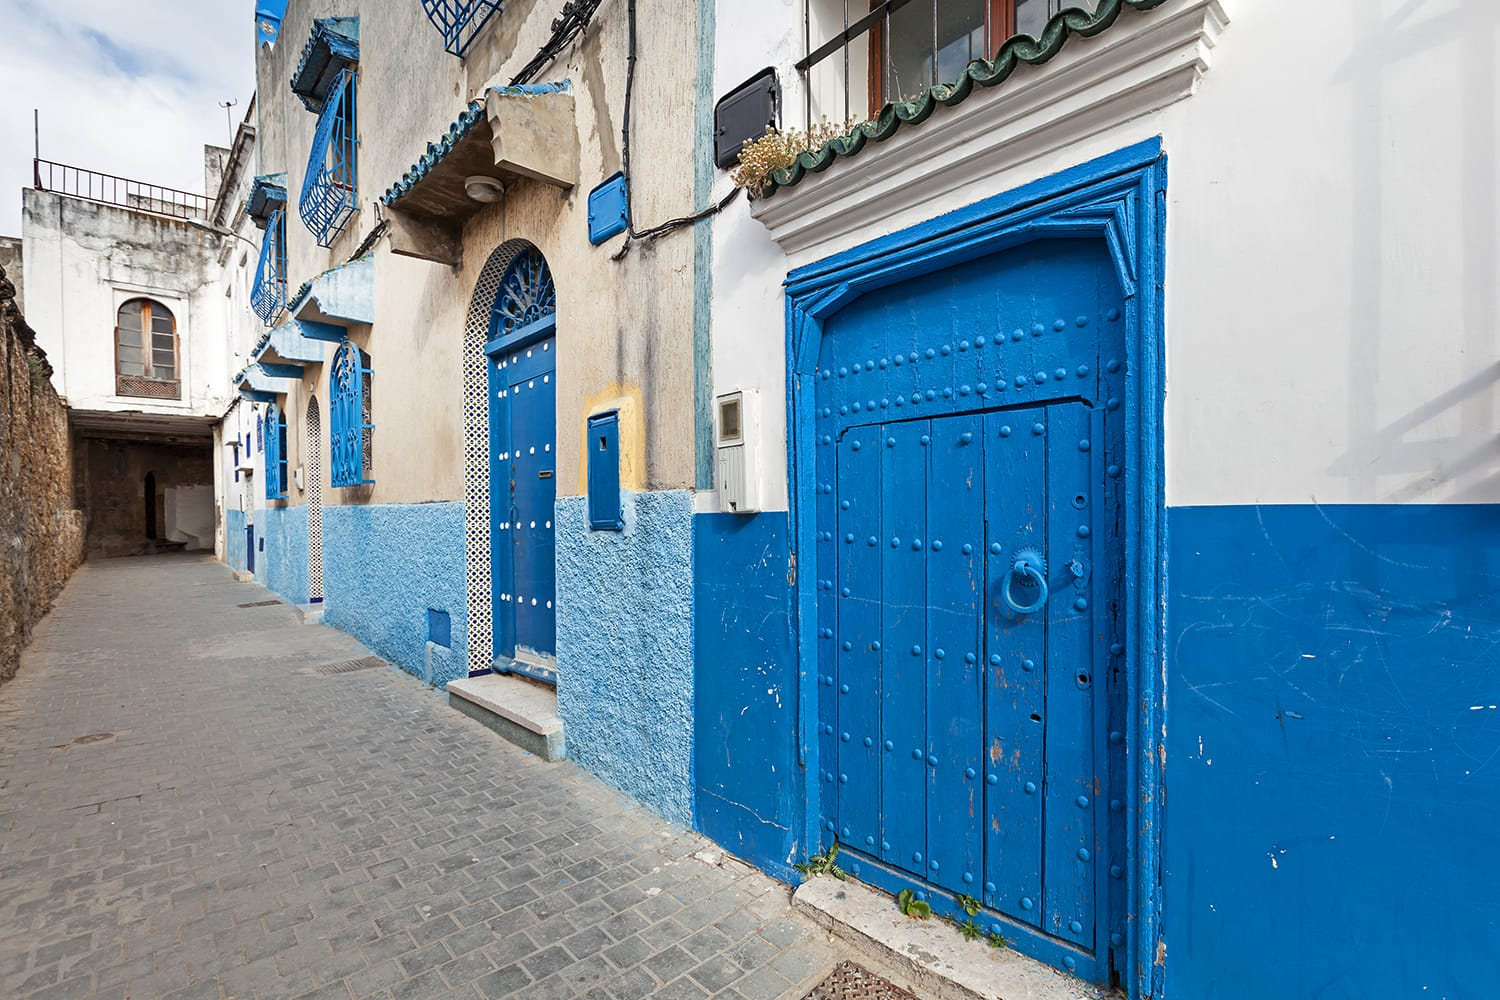 Streets of old Medina. Historical central part of Tanger city, Morocco